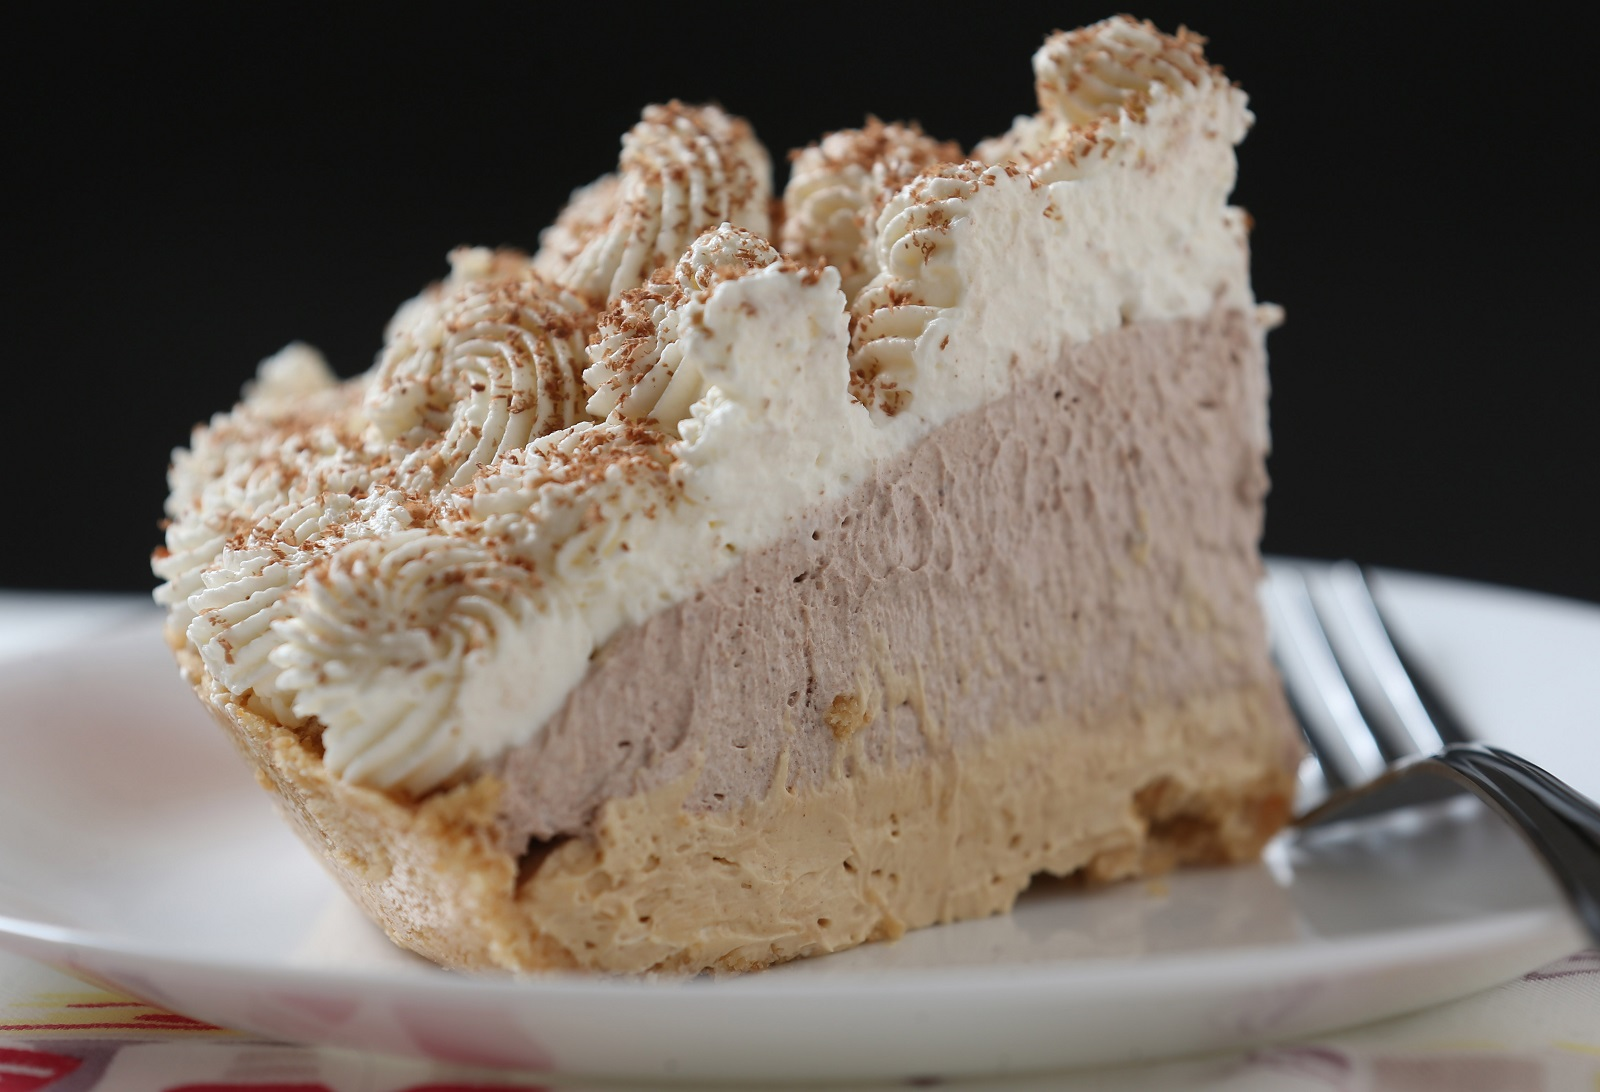 The chocolate peanut butter cream pie from Big Suzie's Little Bakery is one of Andrew Galarneau's pie picks. (Sharon Cantillon/Buffalo News)